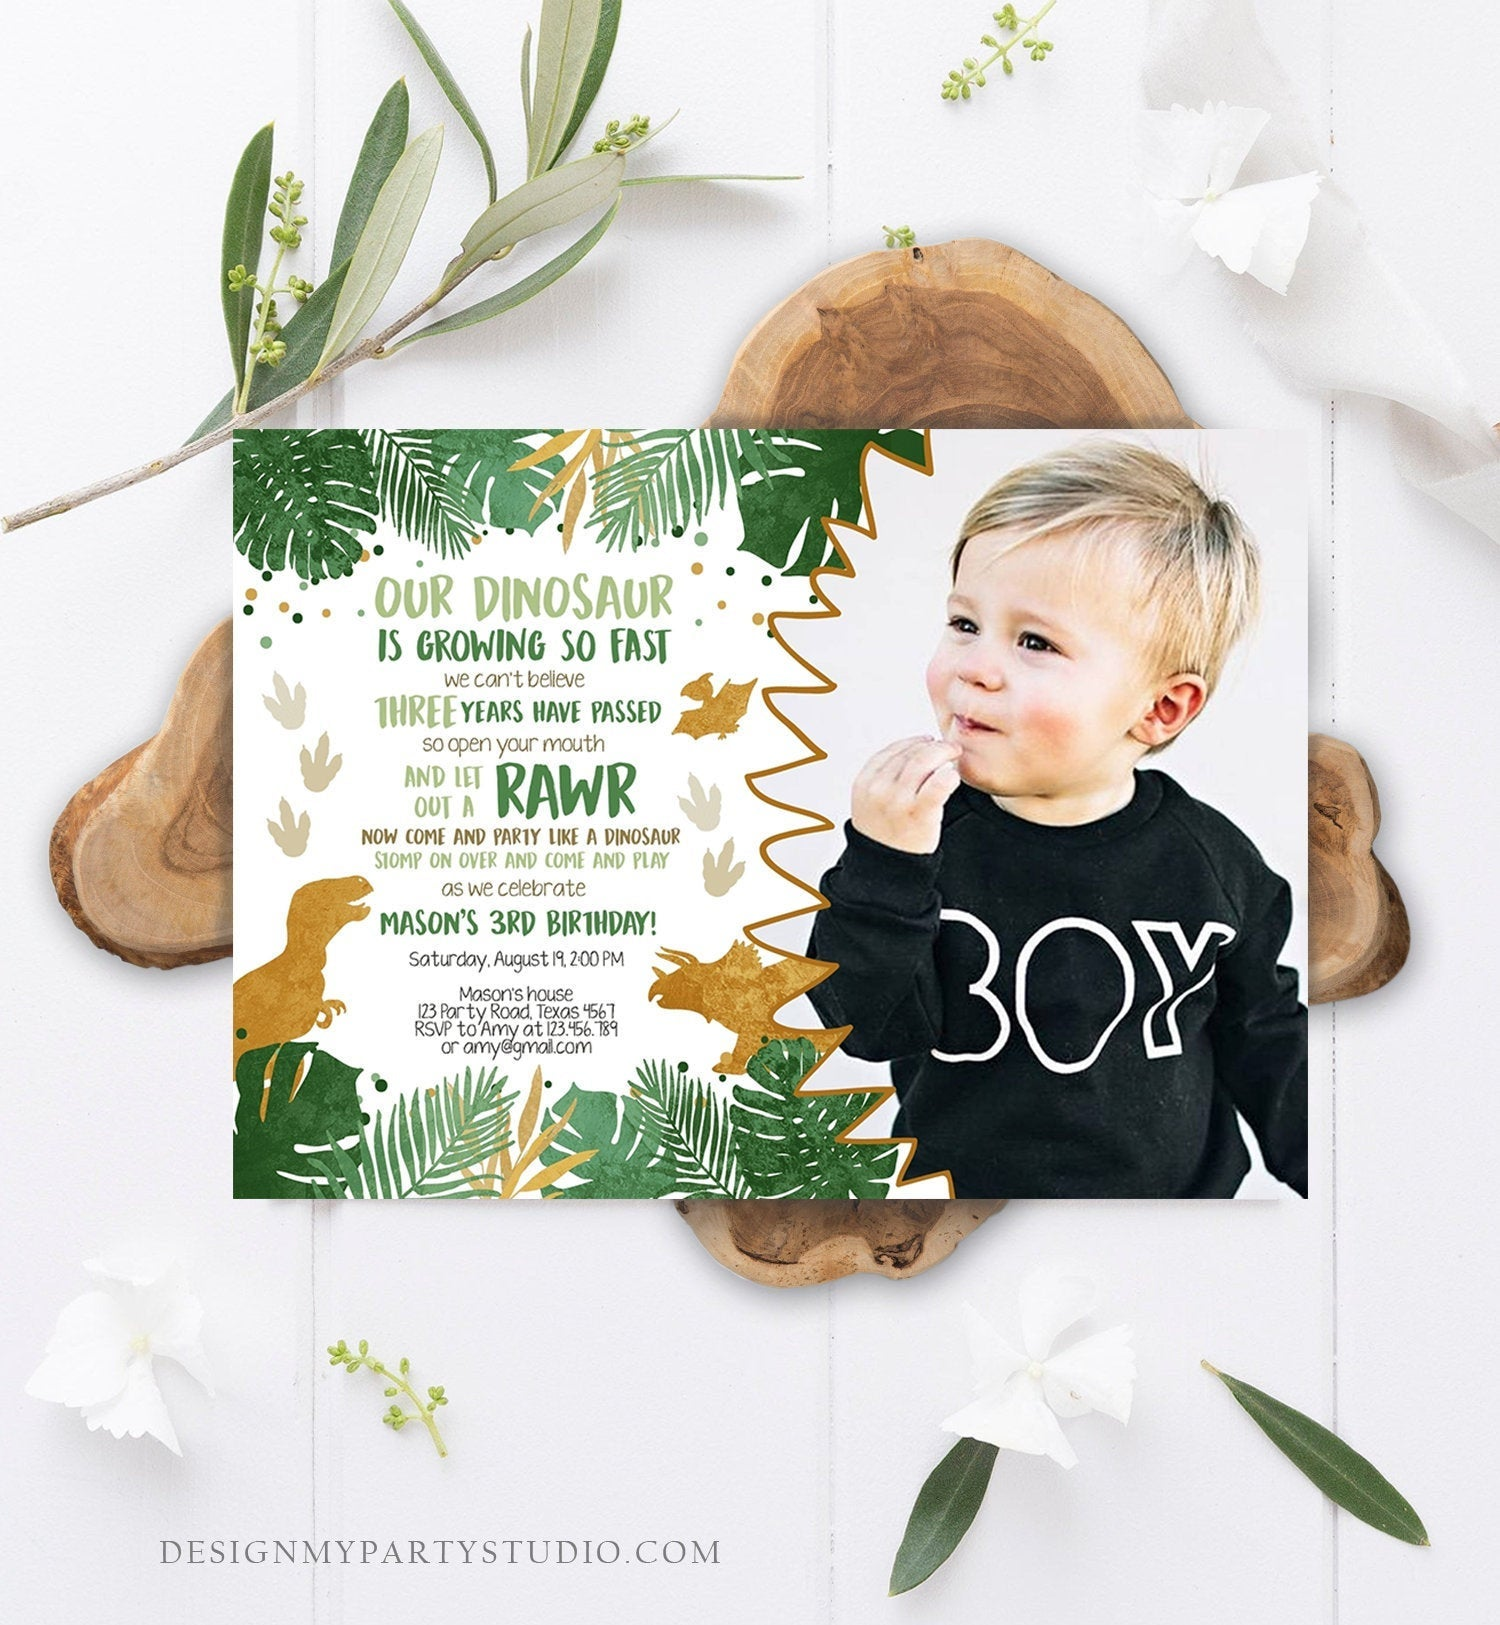 Editable Dinosaur Birthday Invitation ANY AGE Dino Dig Party Prehistoric Boy Gold Green T-Rex Photo Download Printable Corjl Template 0146